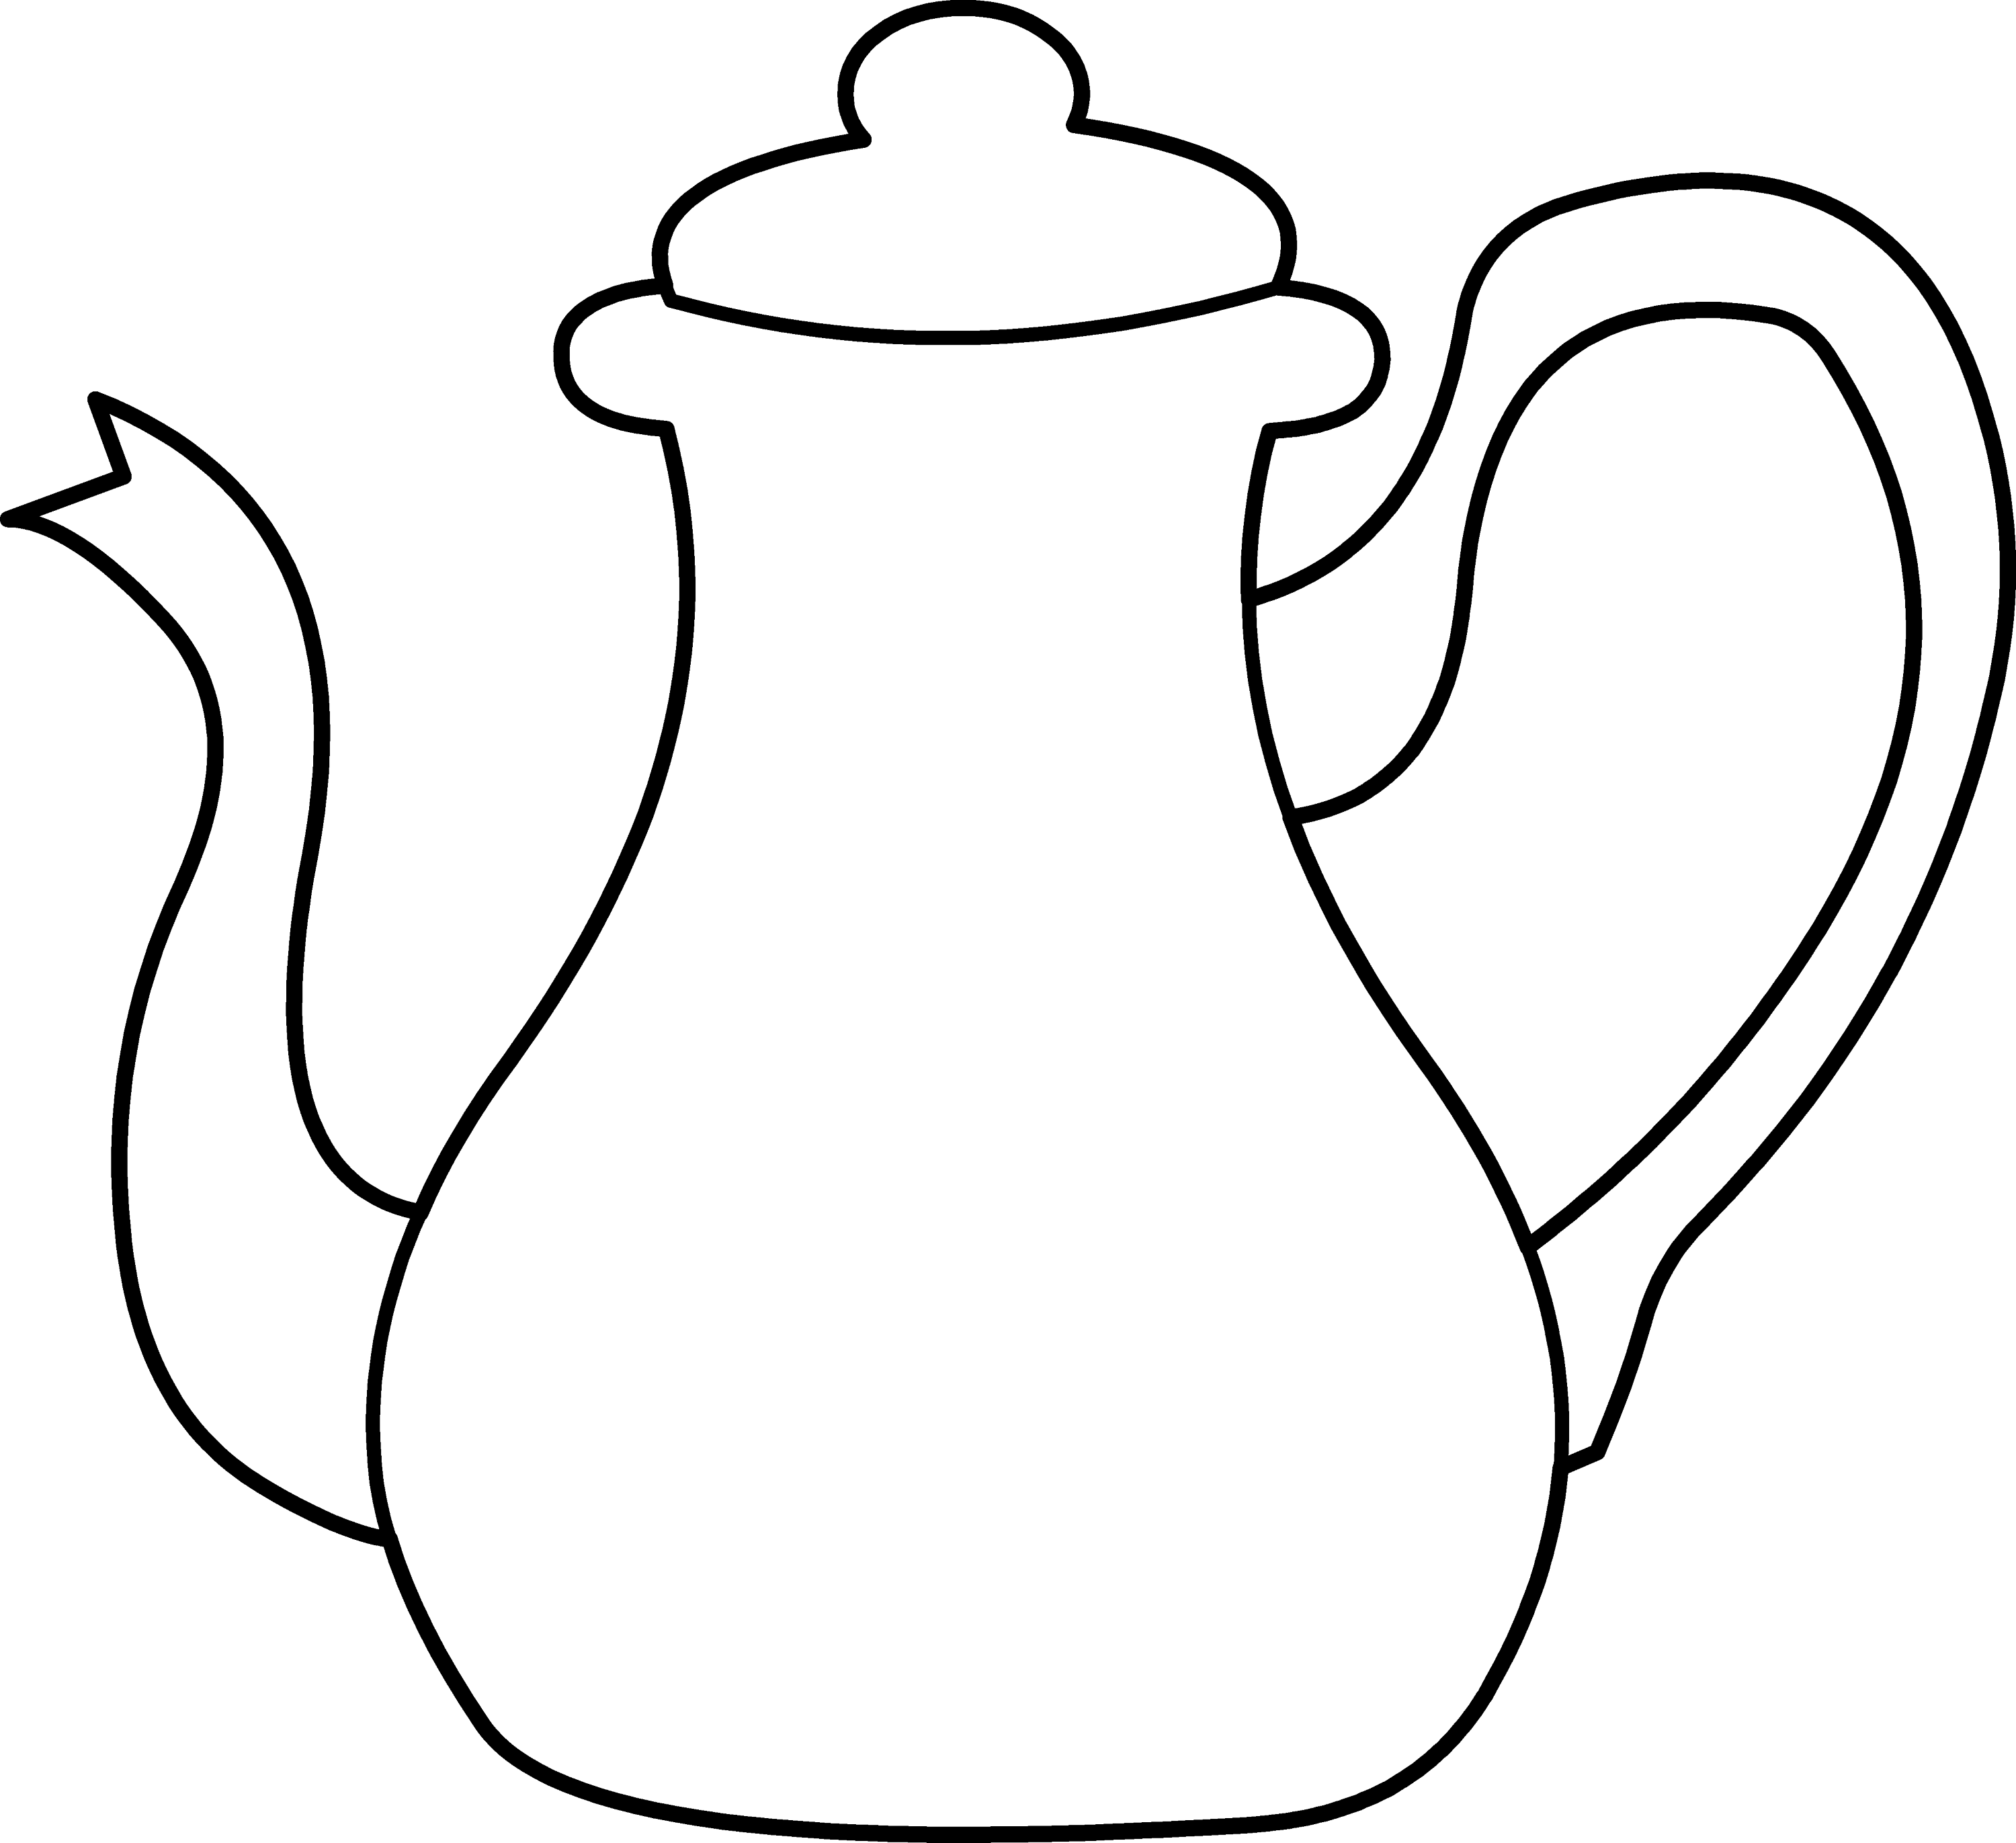 tea kettle coloring page free clip art rh sweetclipart com teapot clipart images teapot clip art for business cards